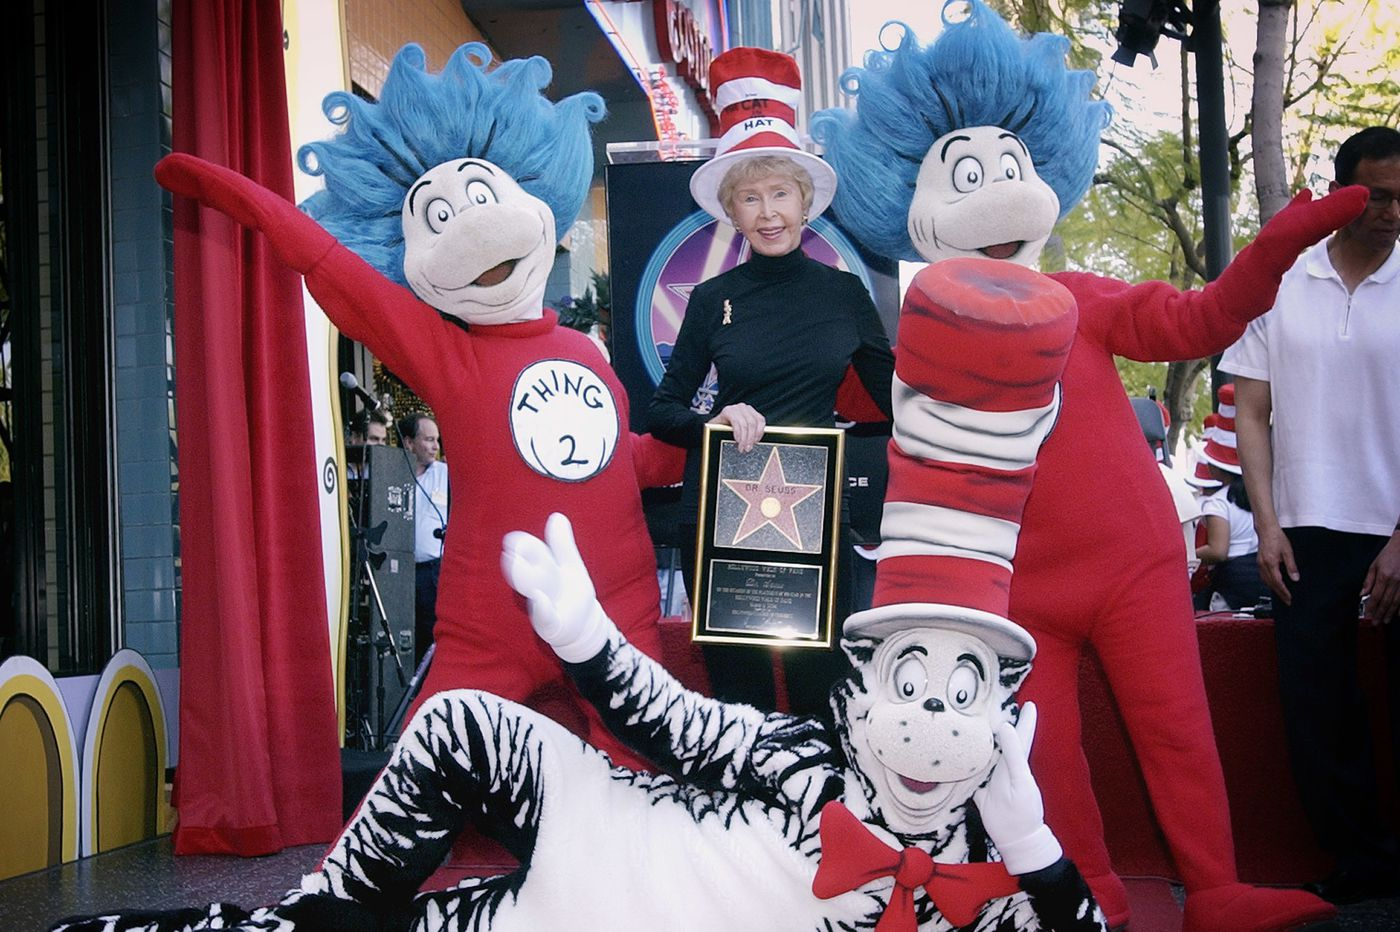 Audrey Geisel, widow and promoter of Dr. Seuss, dies at 97